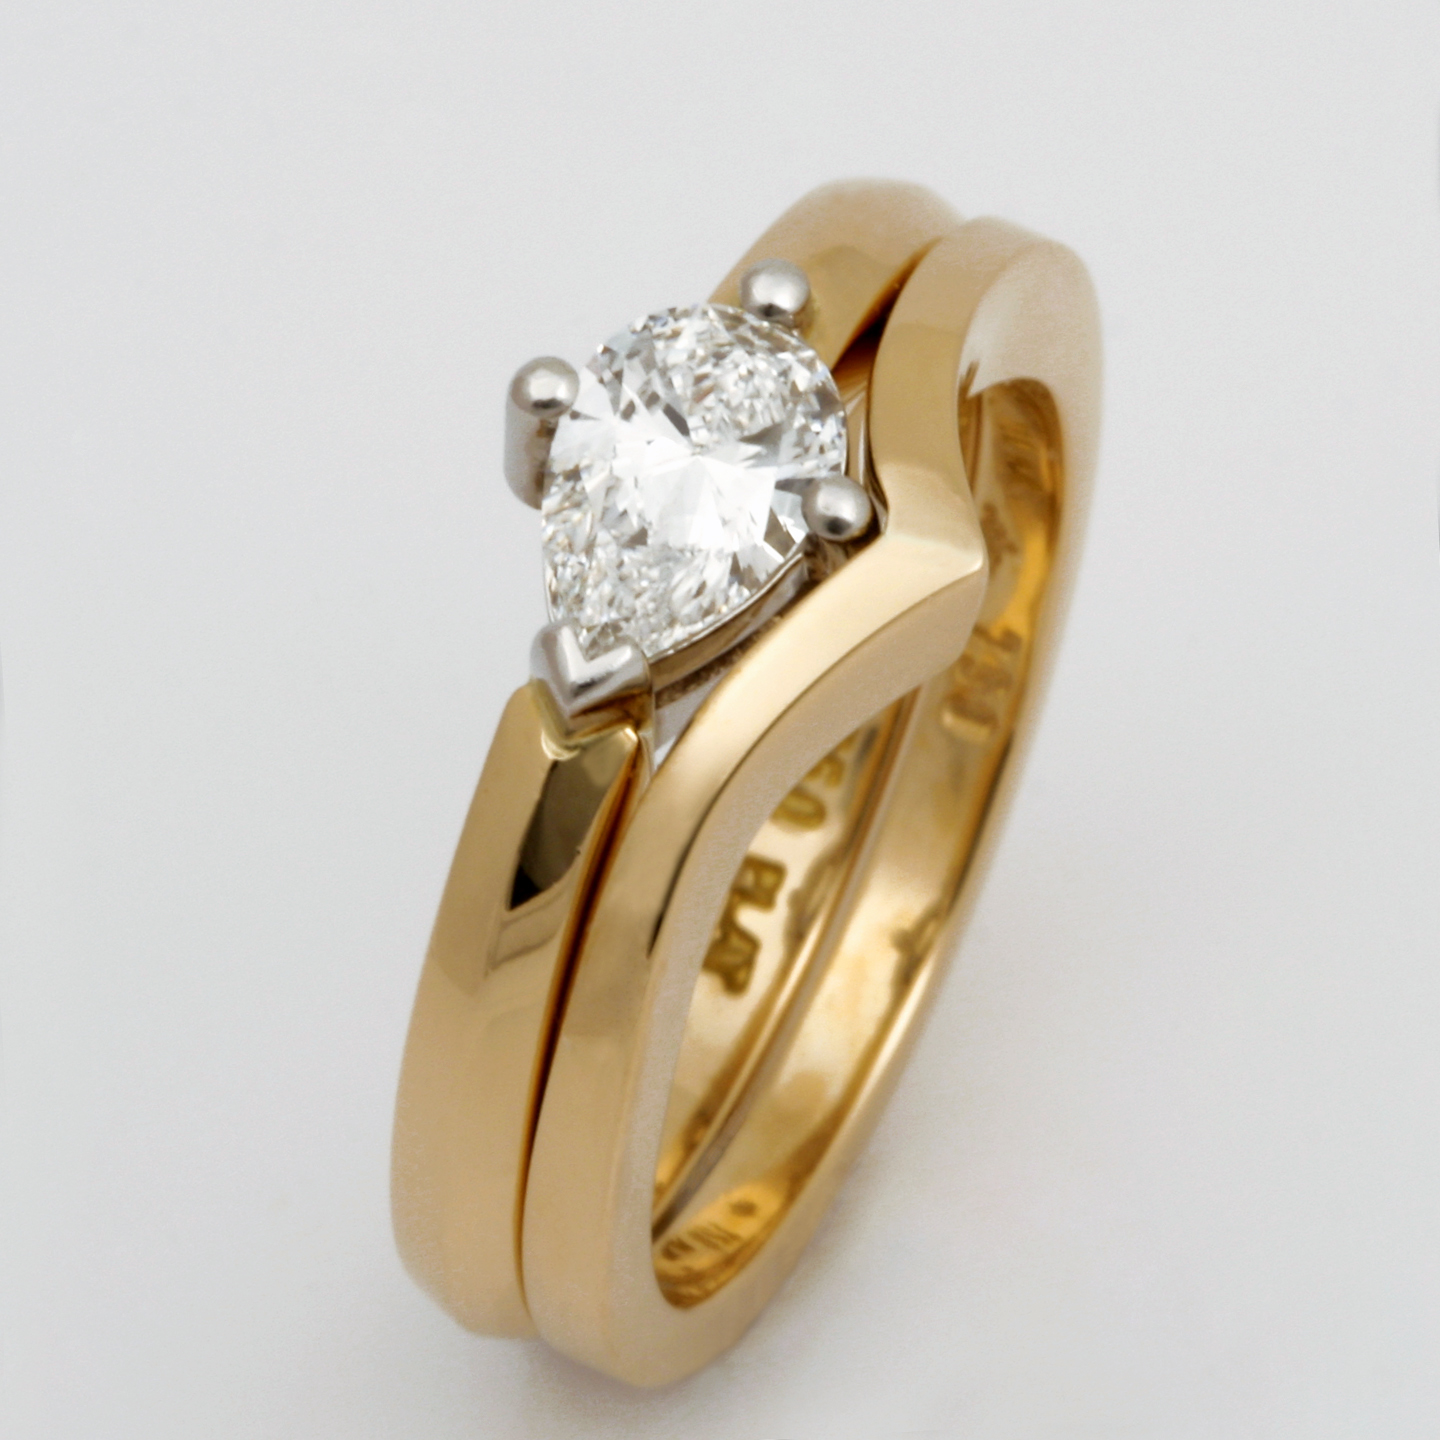 Handmade 18ct yellow gold fitted wedding ring